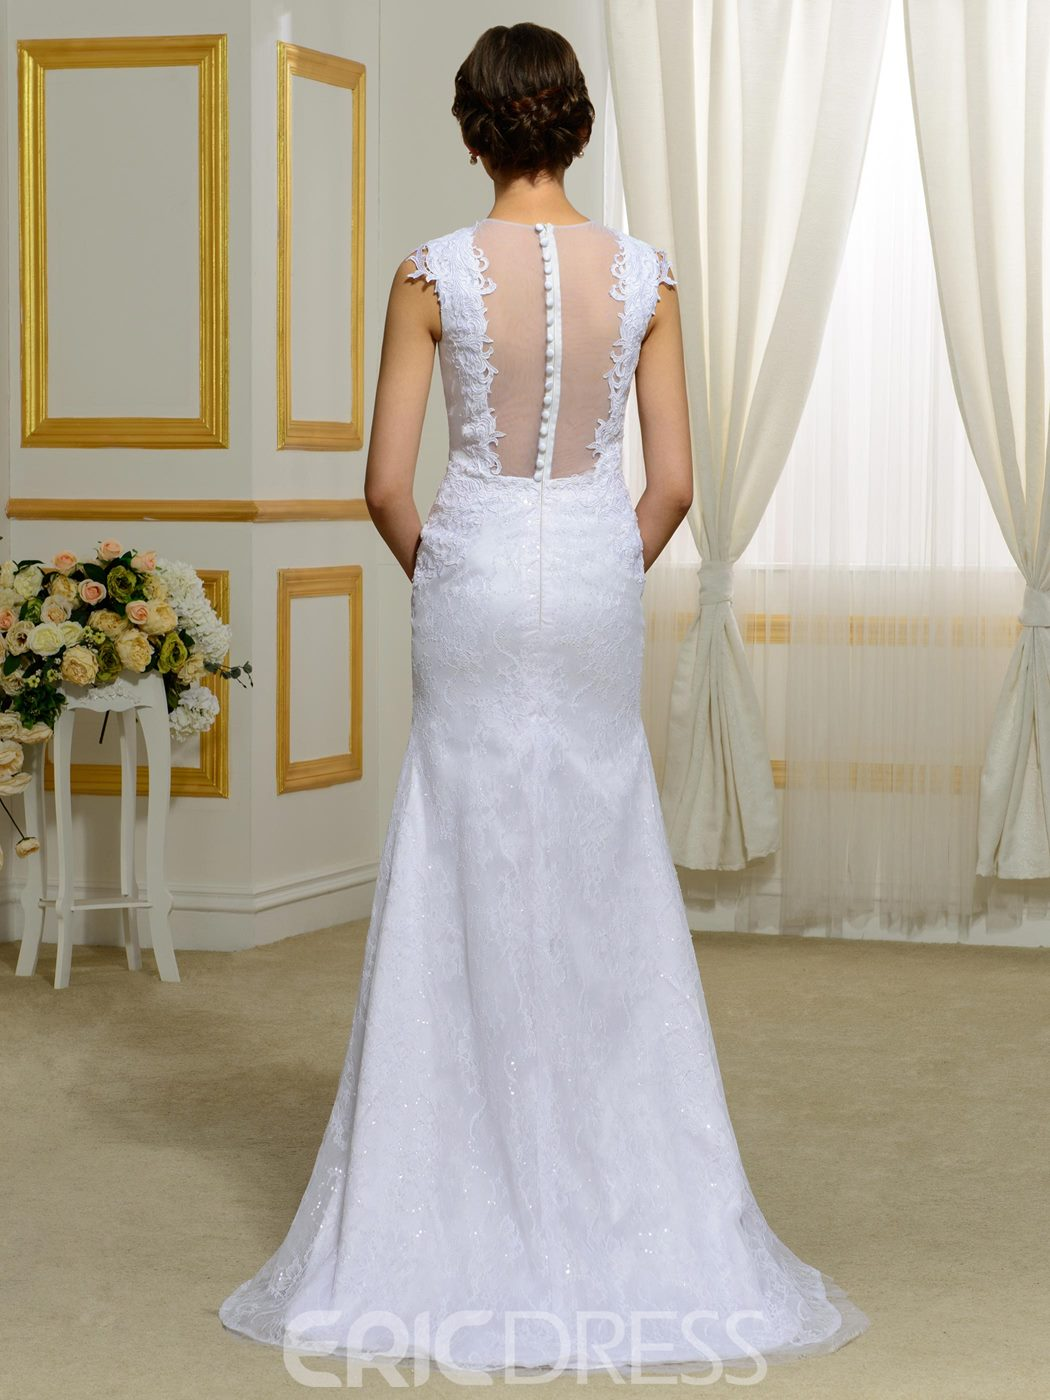 Ericdress Fashionable Illusion Back Lace Mermaid Wedding Dress